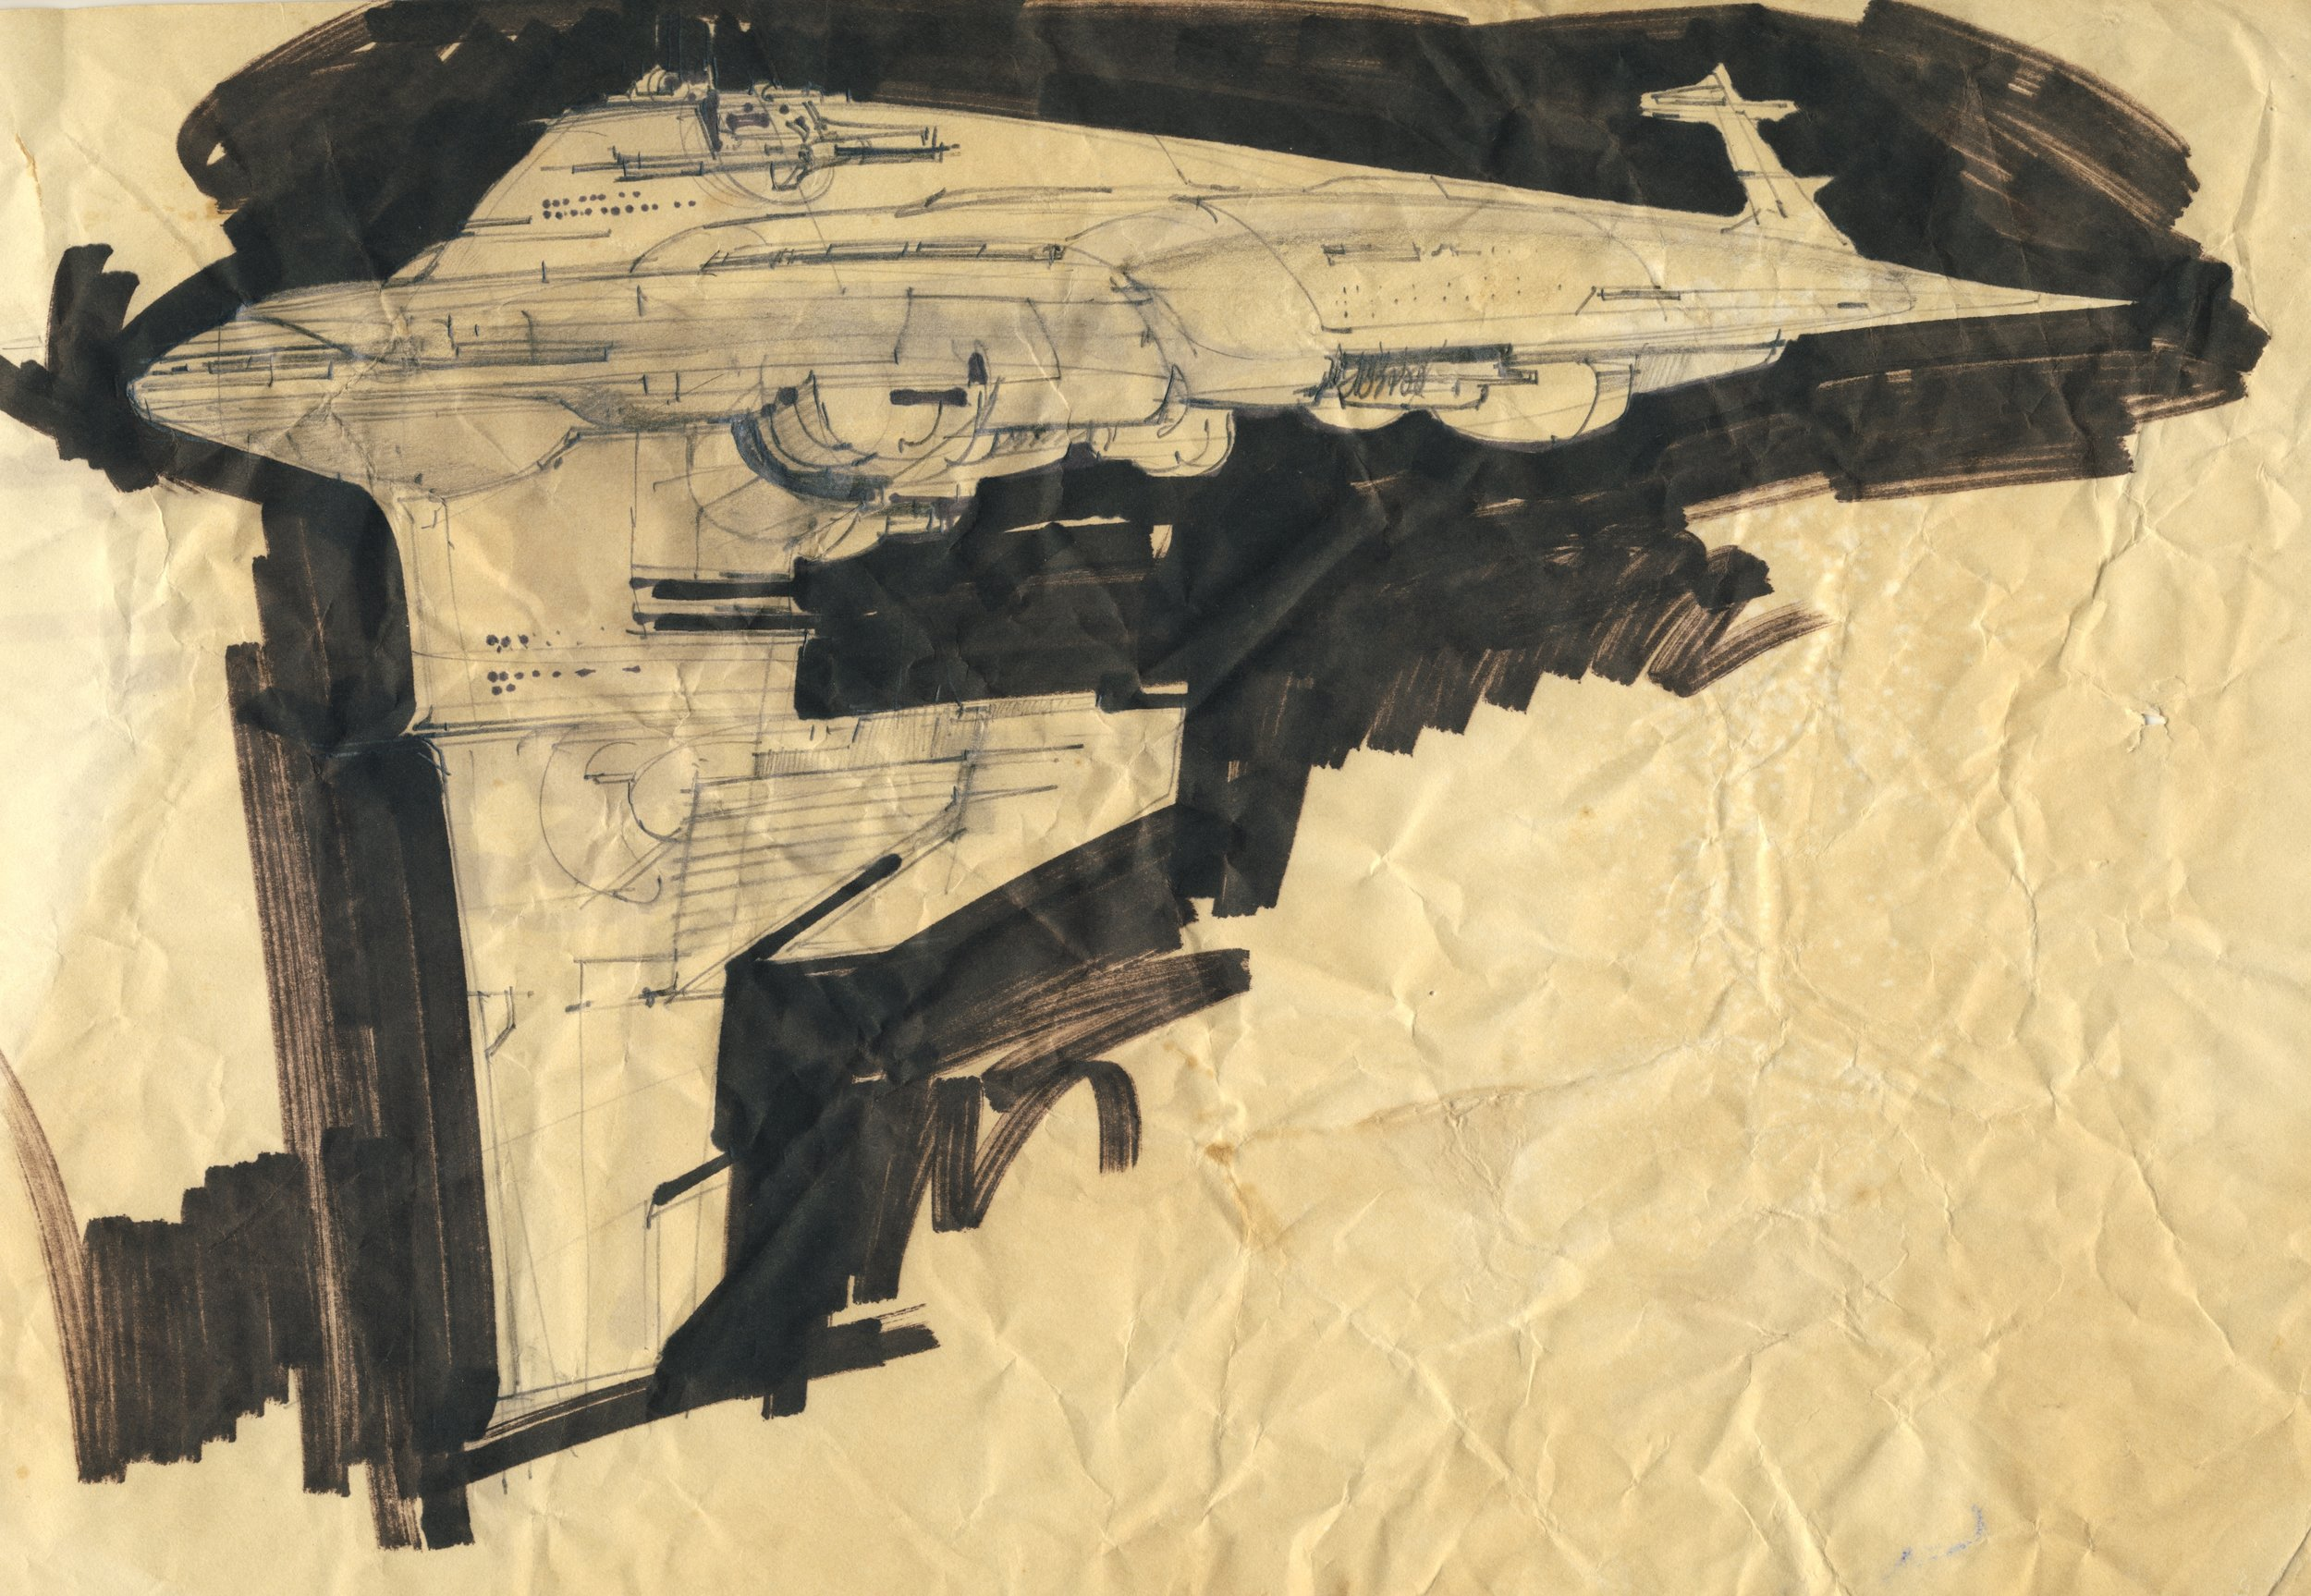 Concept art of a Rebel Medical Frigate, possibly sketched by ILM's Joe Johnson- The Christopher Corey Smith Collection UPDATE: Paul Bateman informs us that this art is mostly likely the work of Nilo Rodis-Jamero.